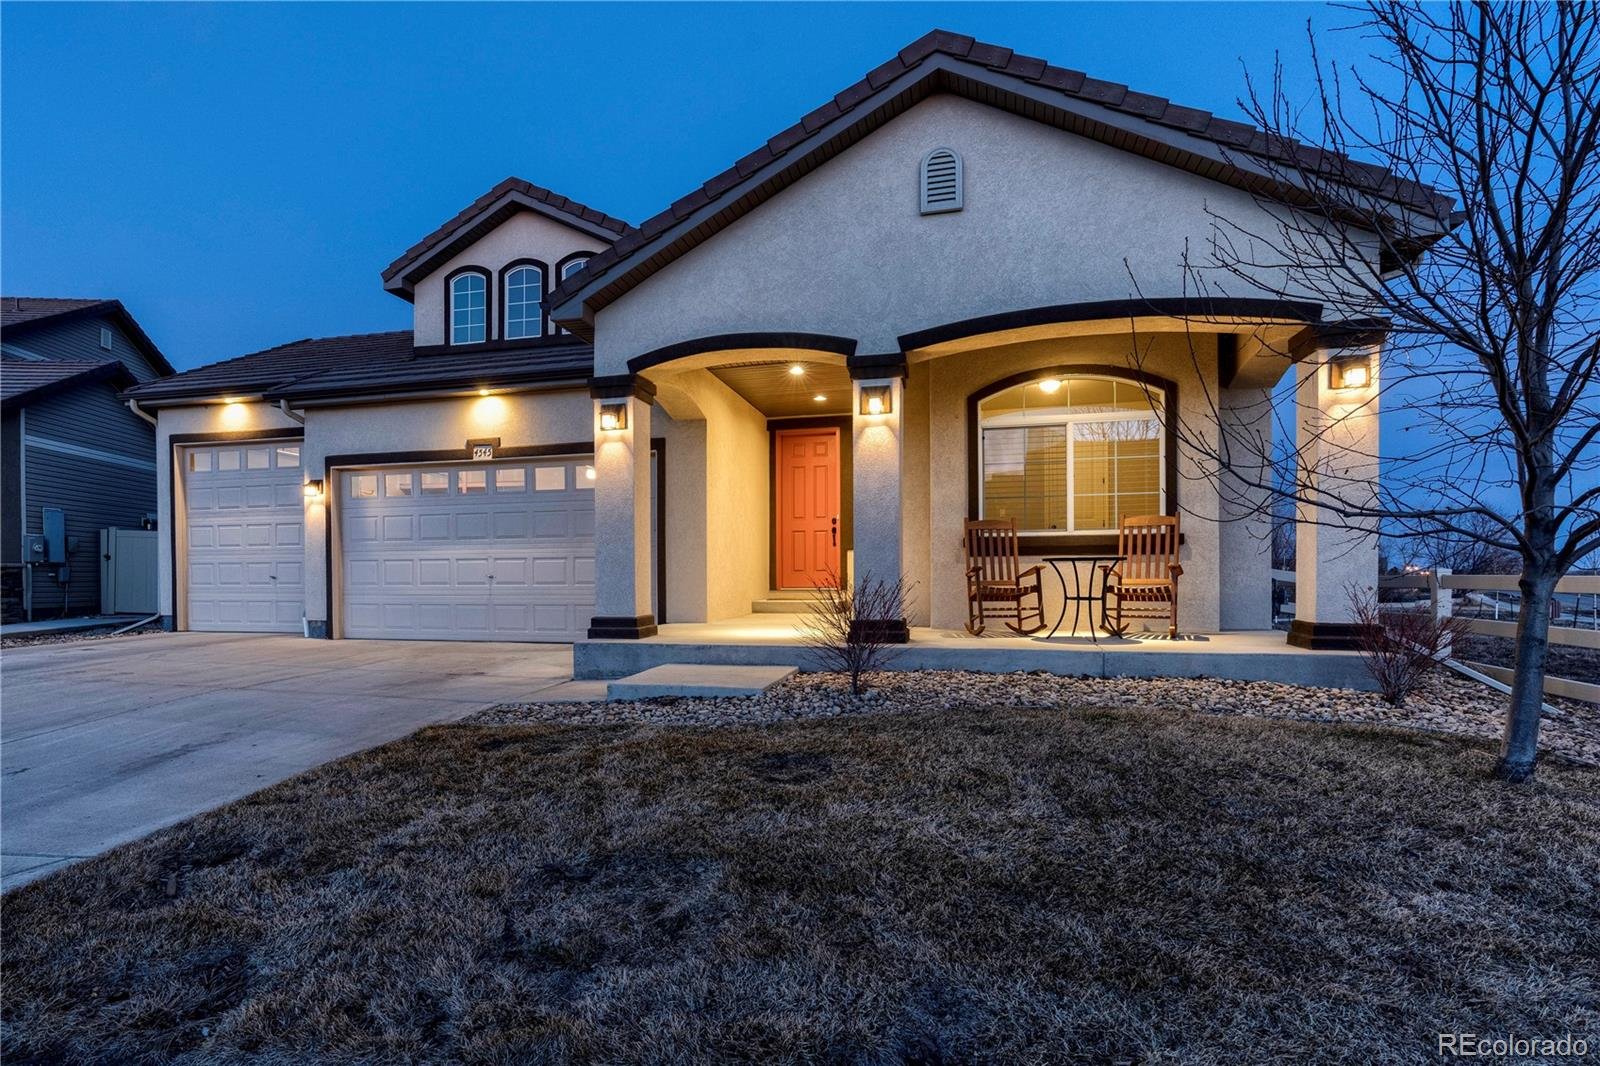 MLS# 4947627 - 2 - 4545 Vinewood Way, Johnstown, CO 80534